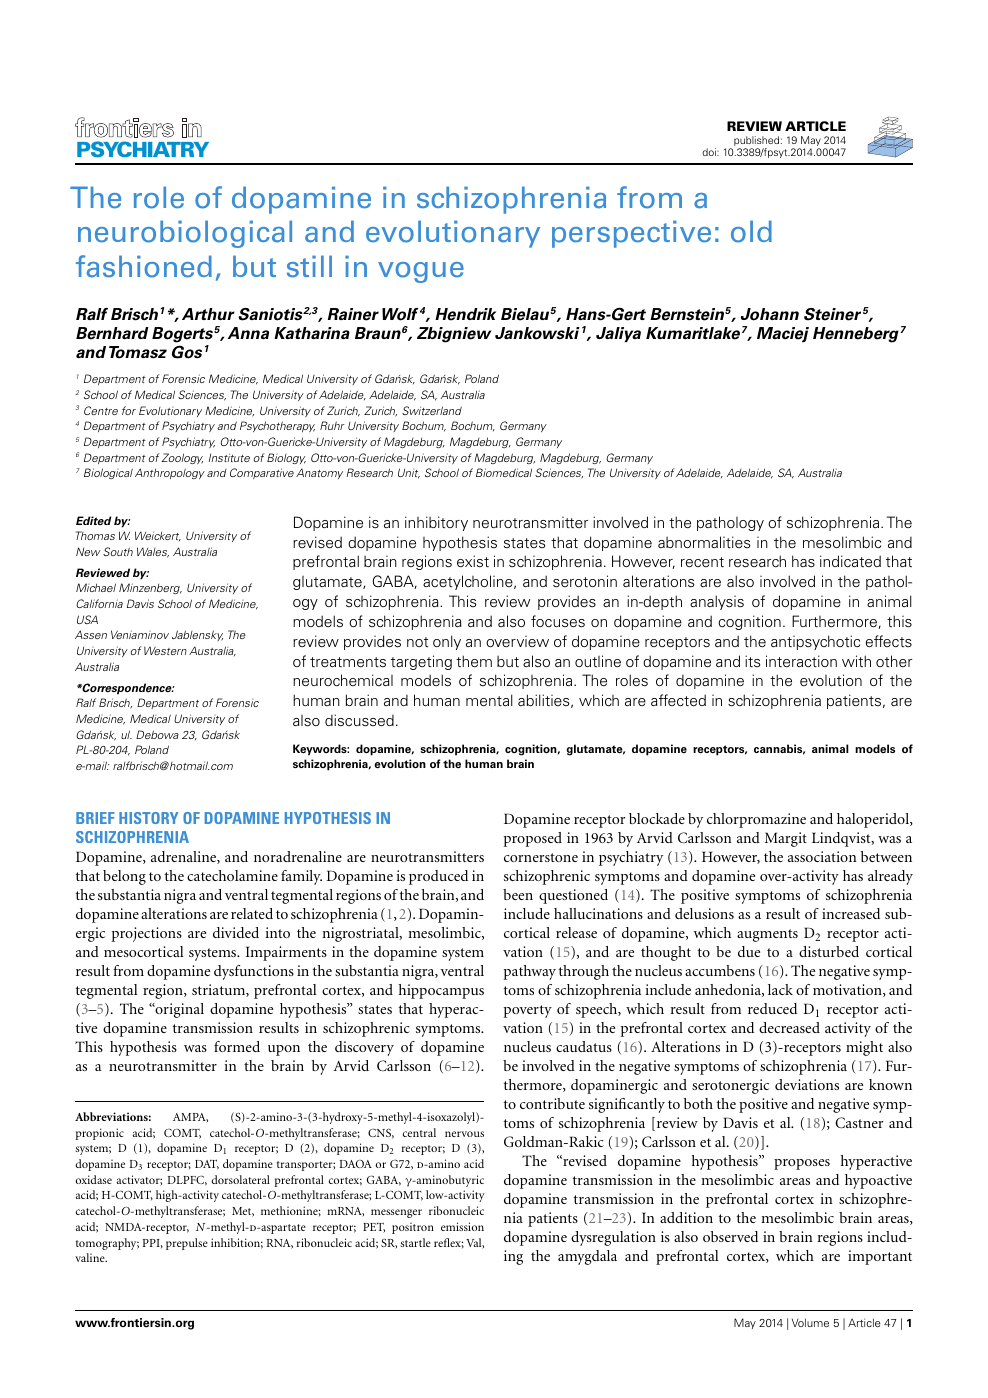 The Role of Dopamine in Schizophrenia from a Neurobiological